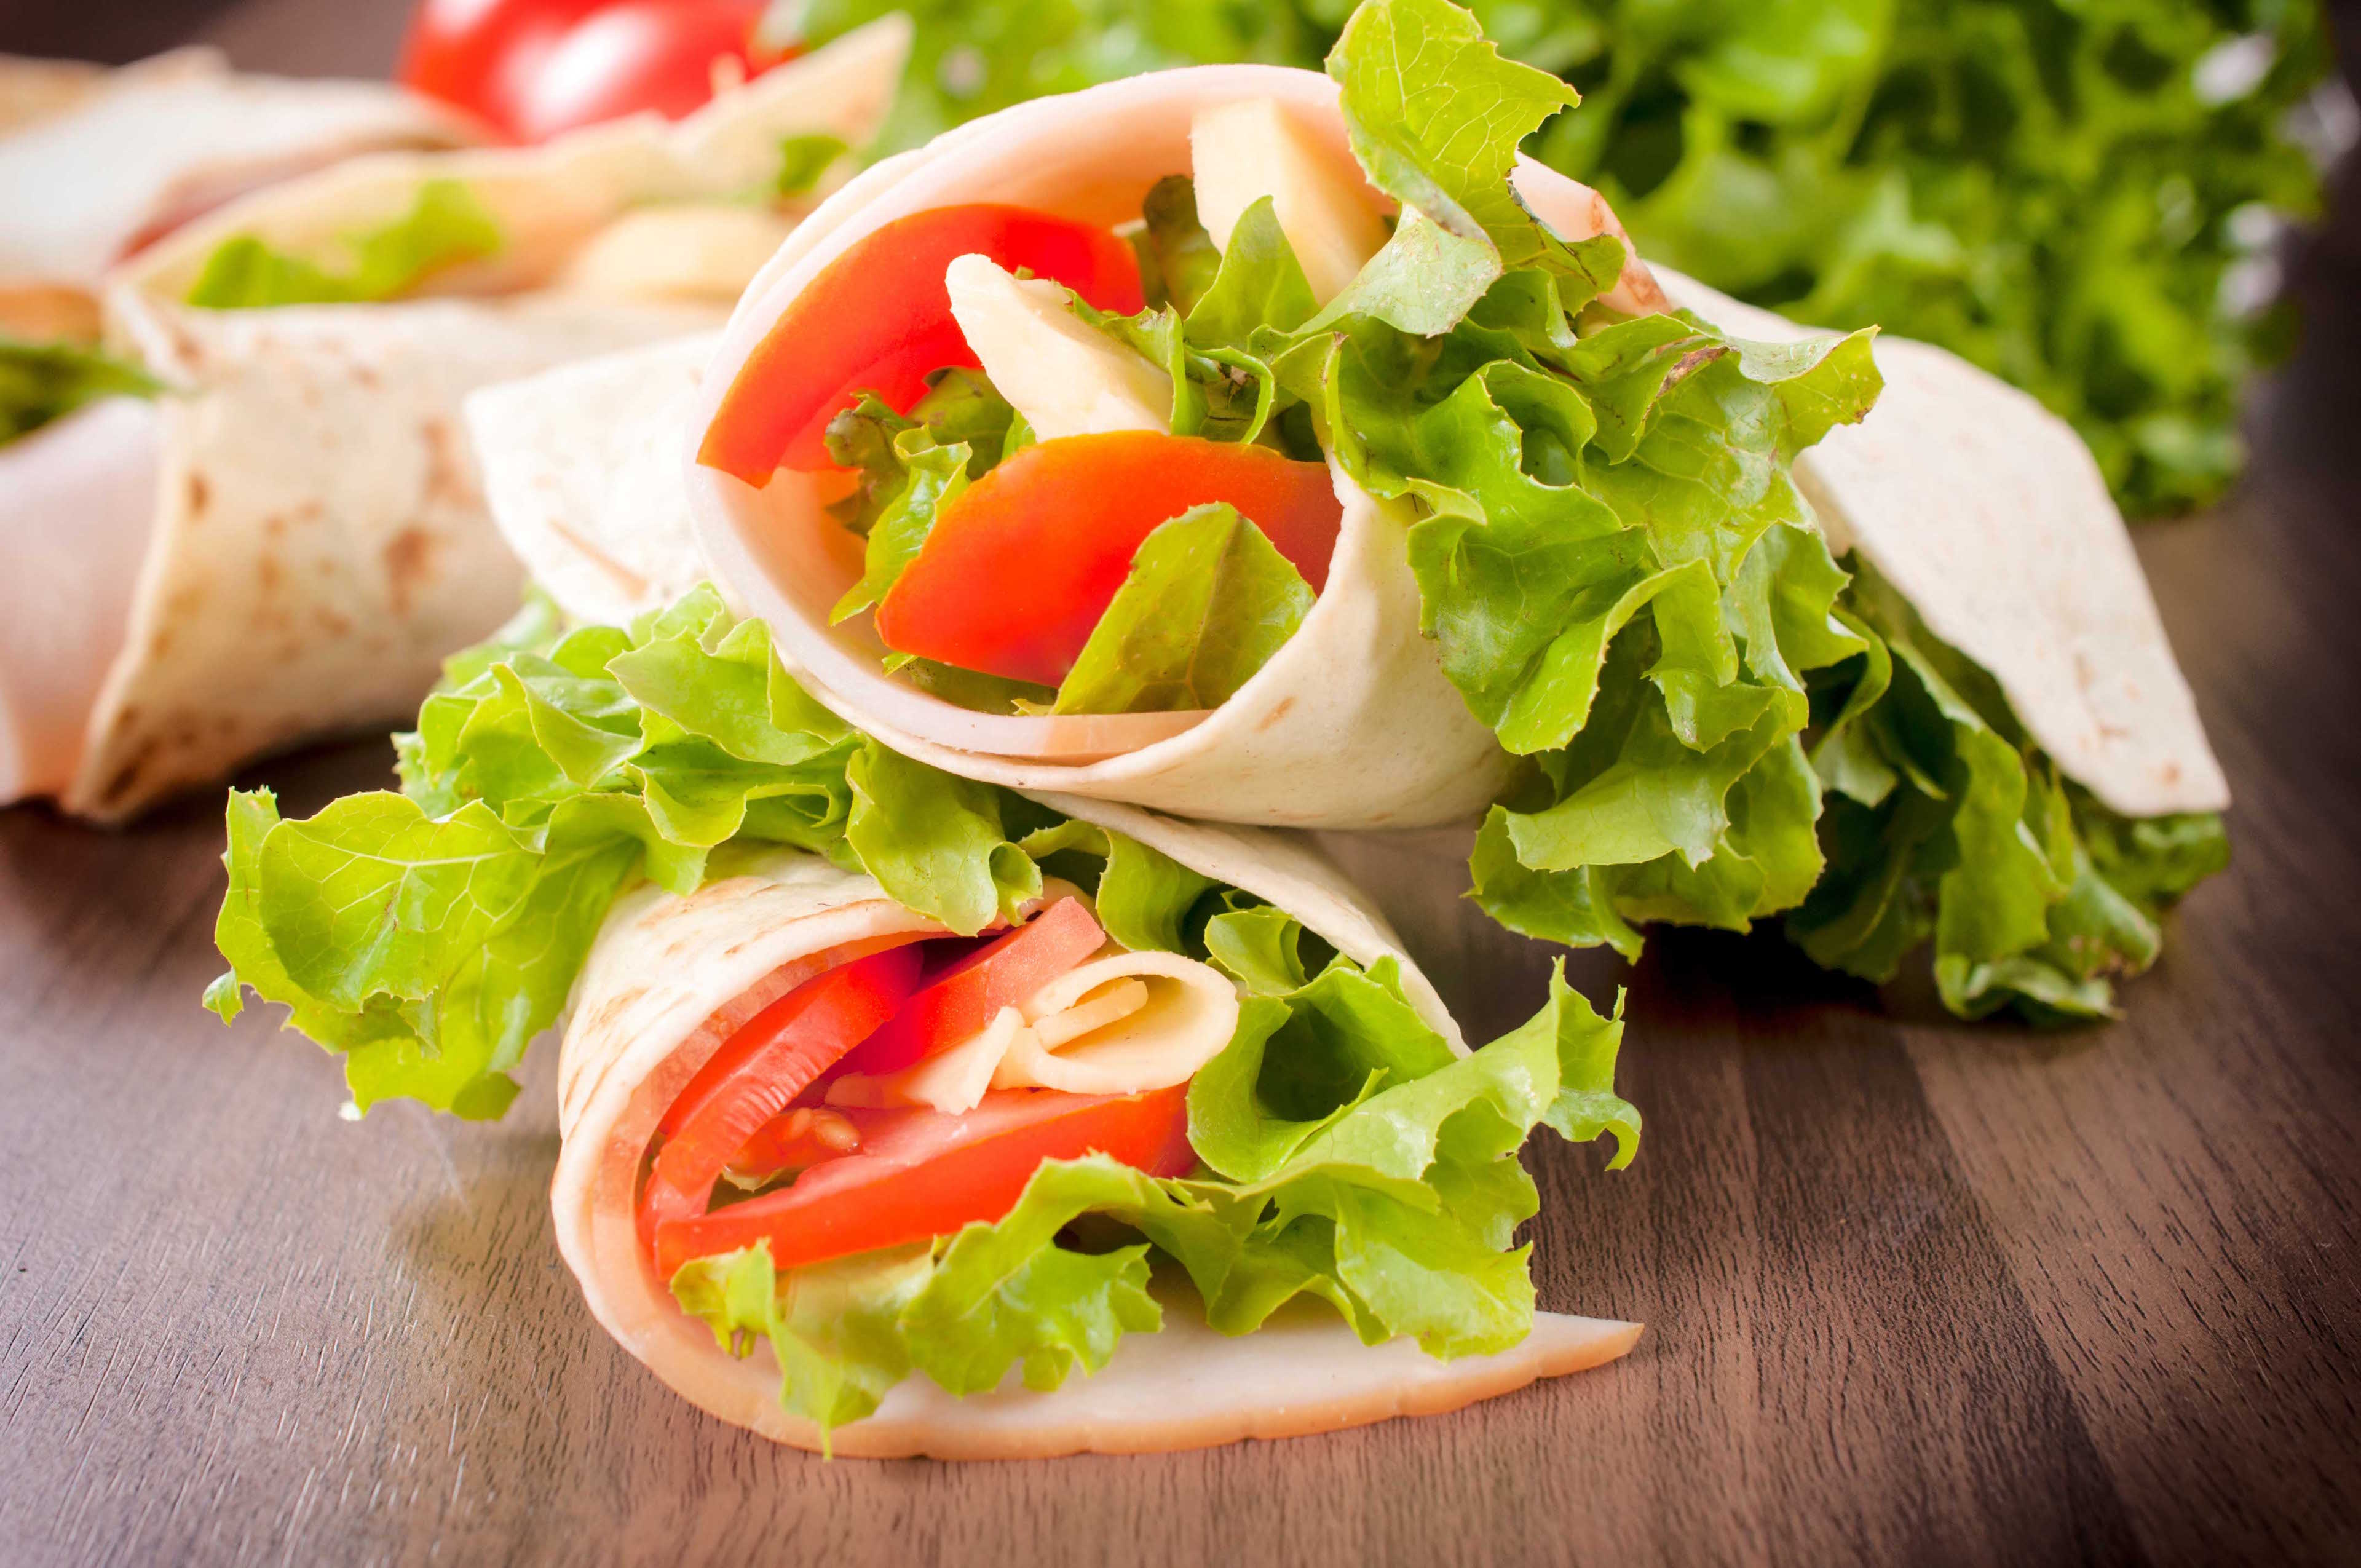 Wrap sandwiches with vegetables